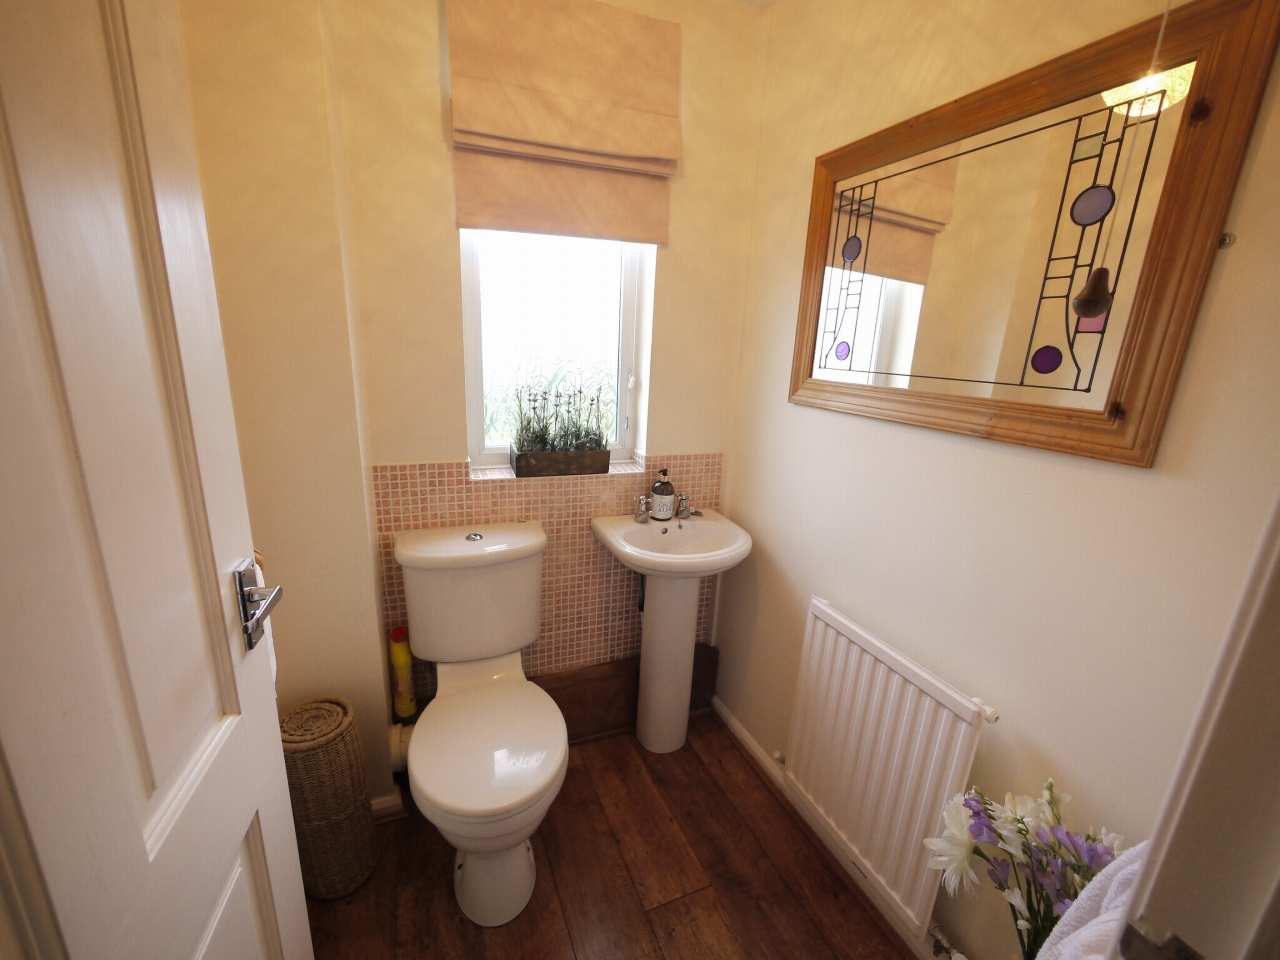 4 bedroom detached house SSTC in Brighouse - Photograph 6.